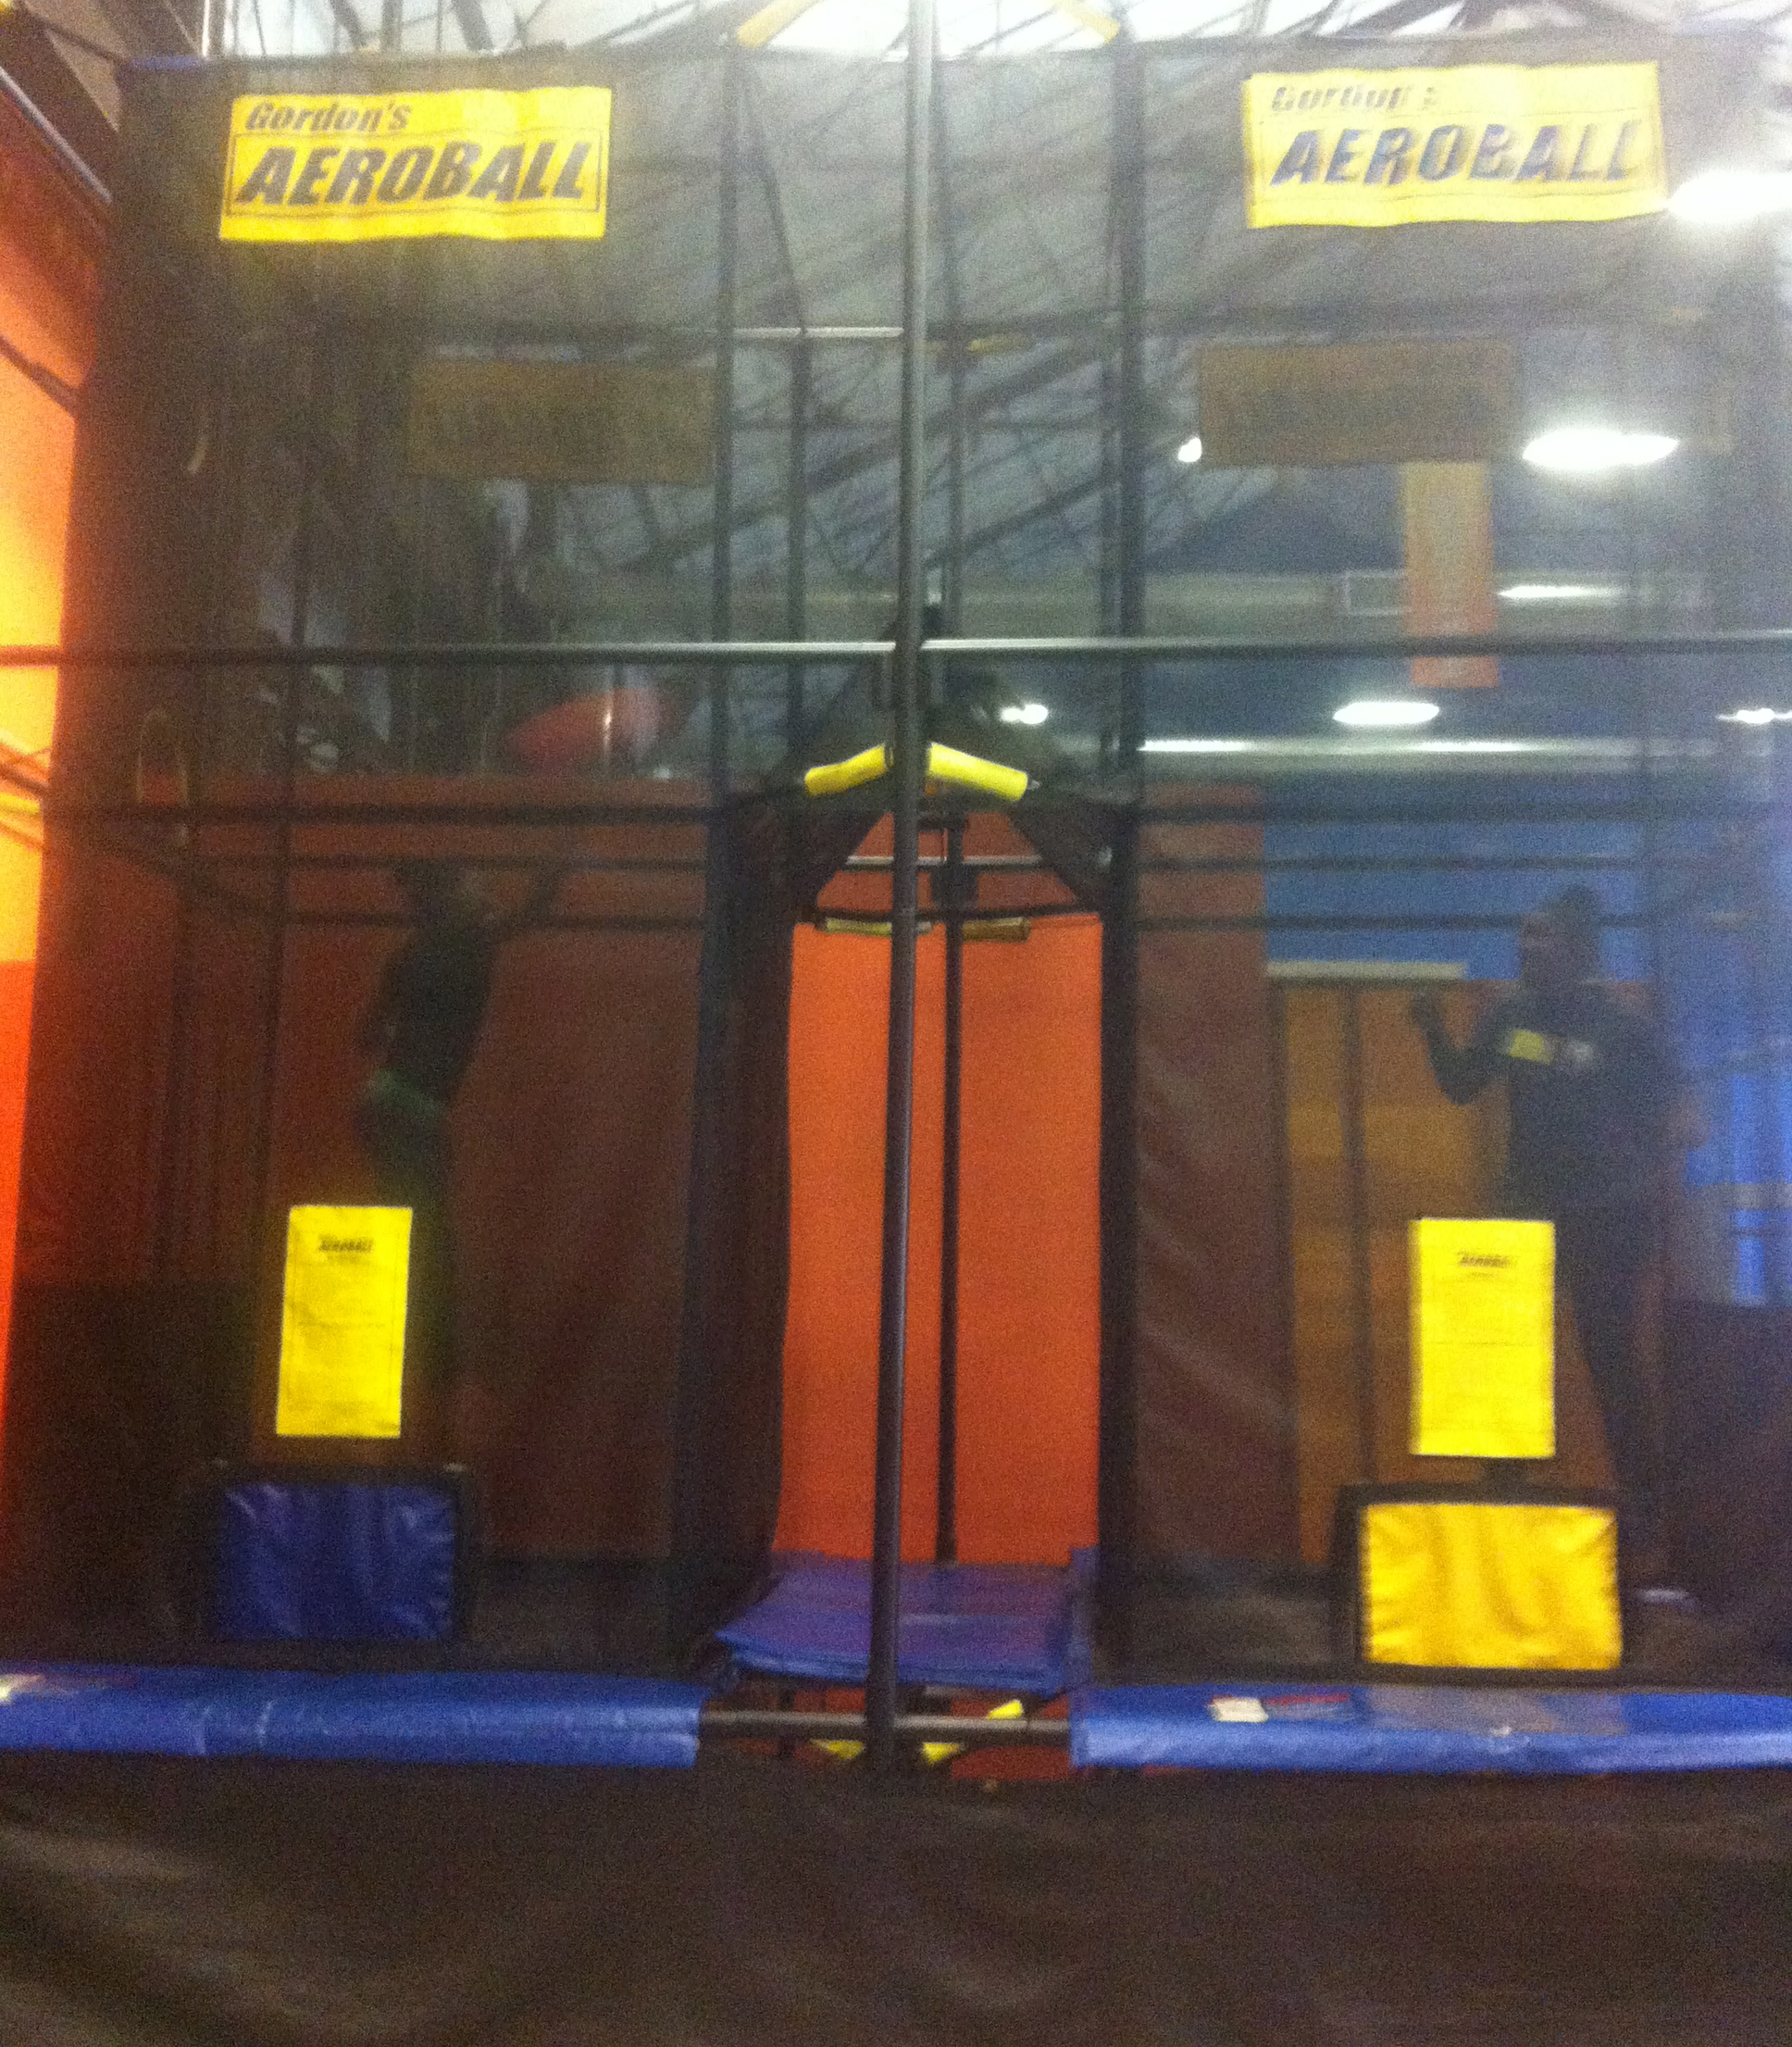 Dominating the Aeroball courts!